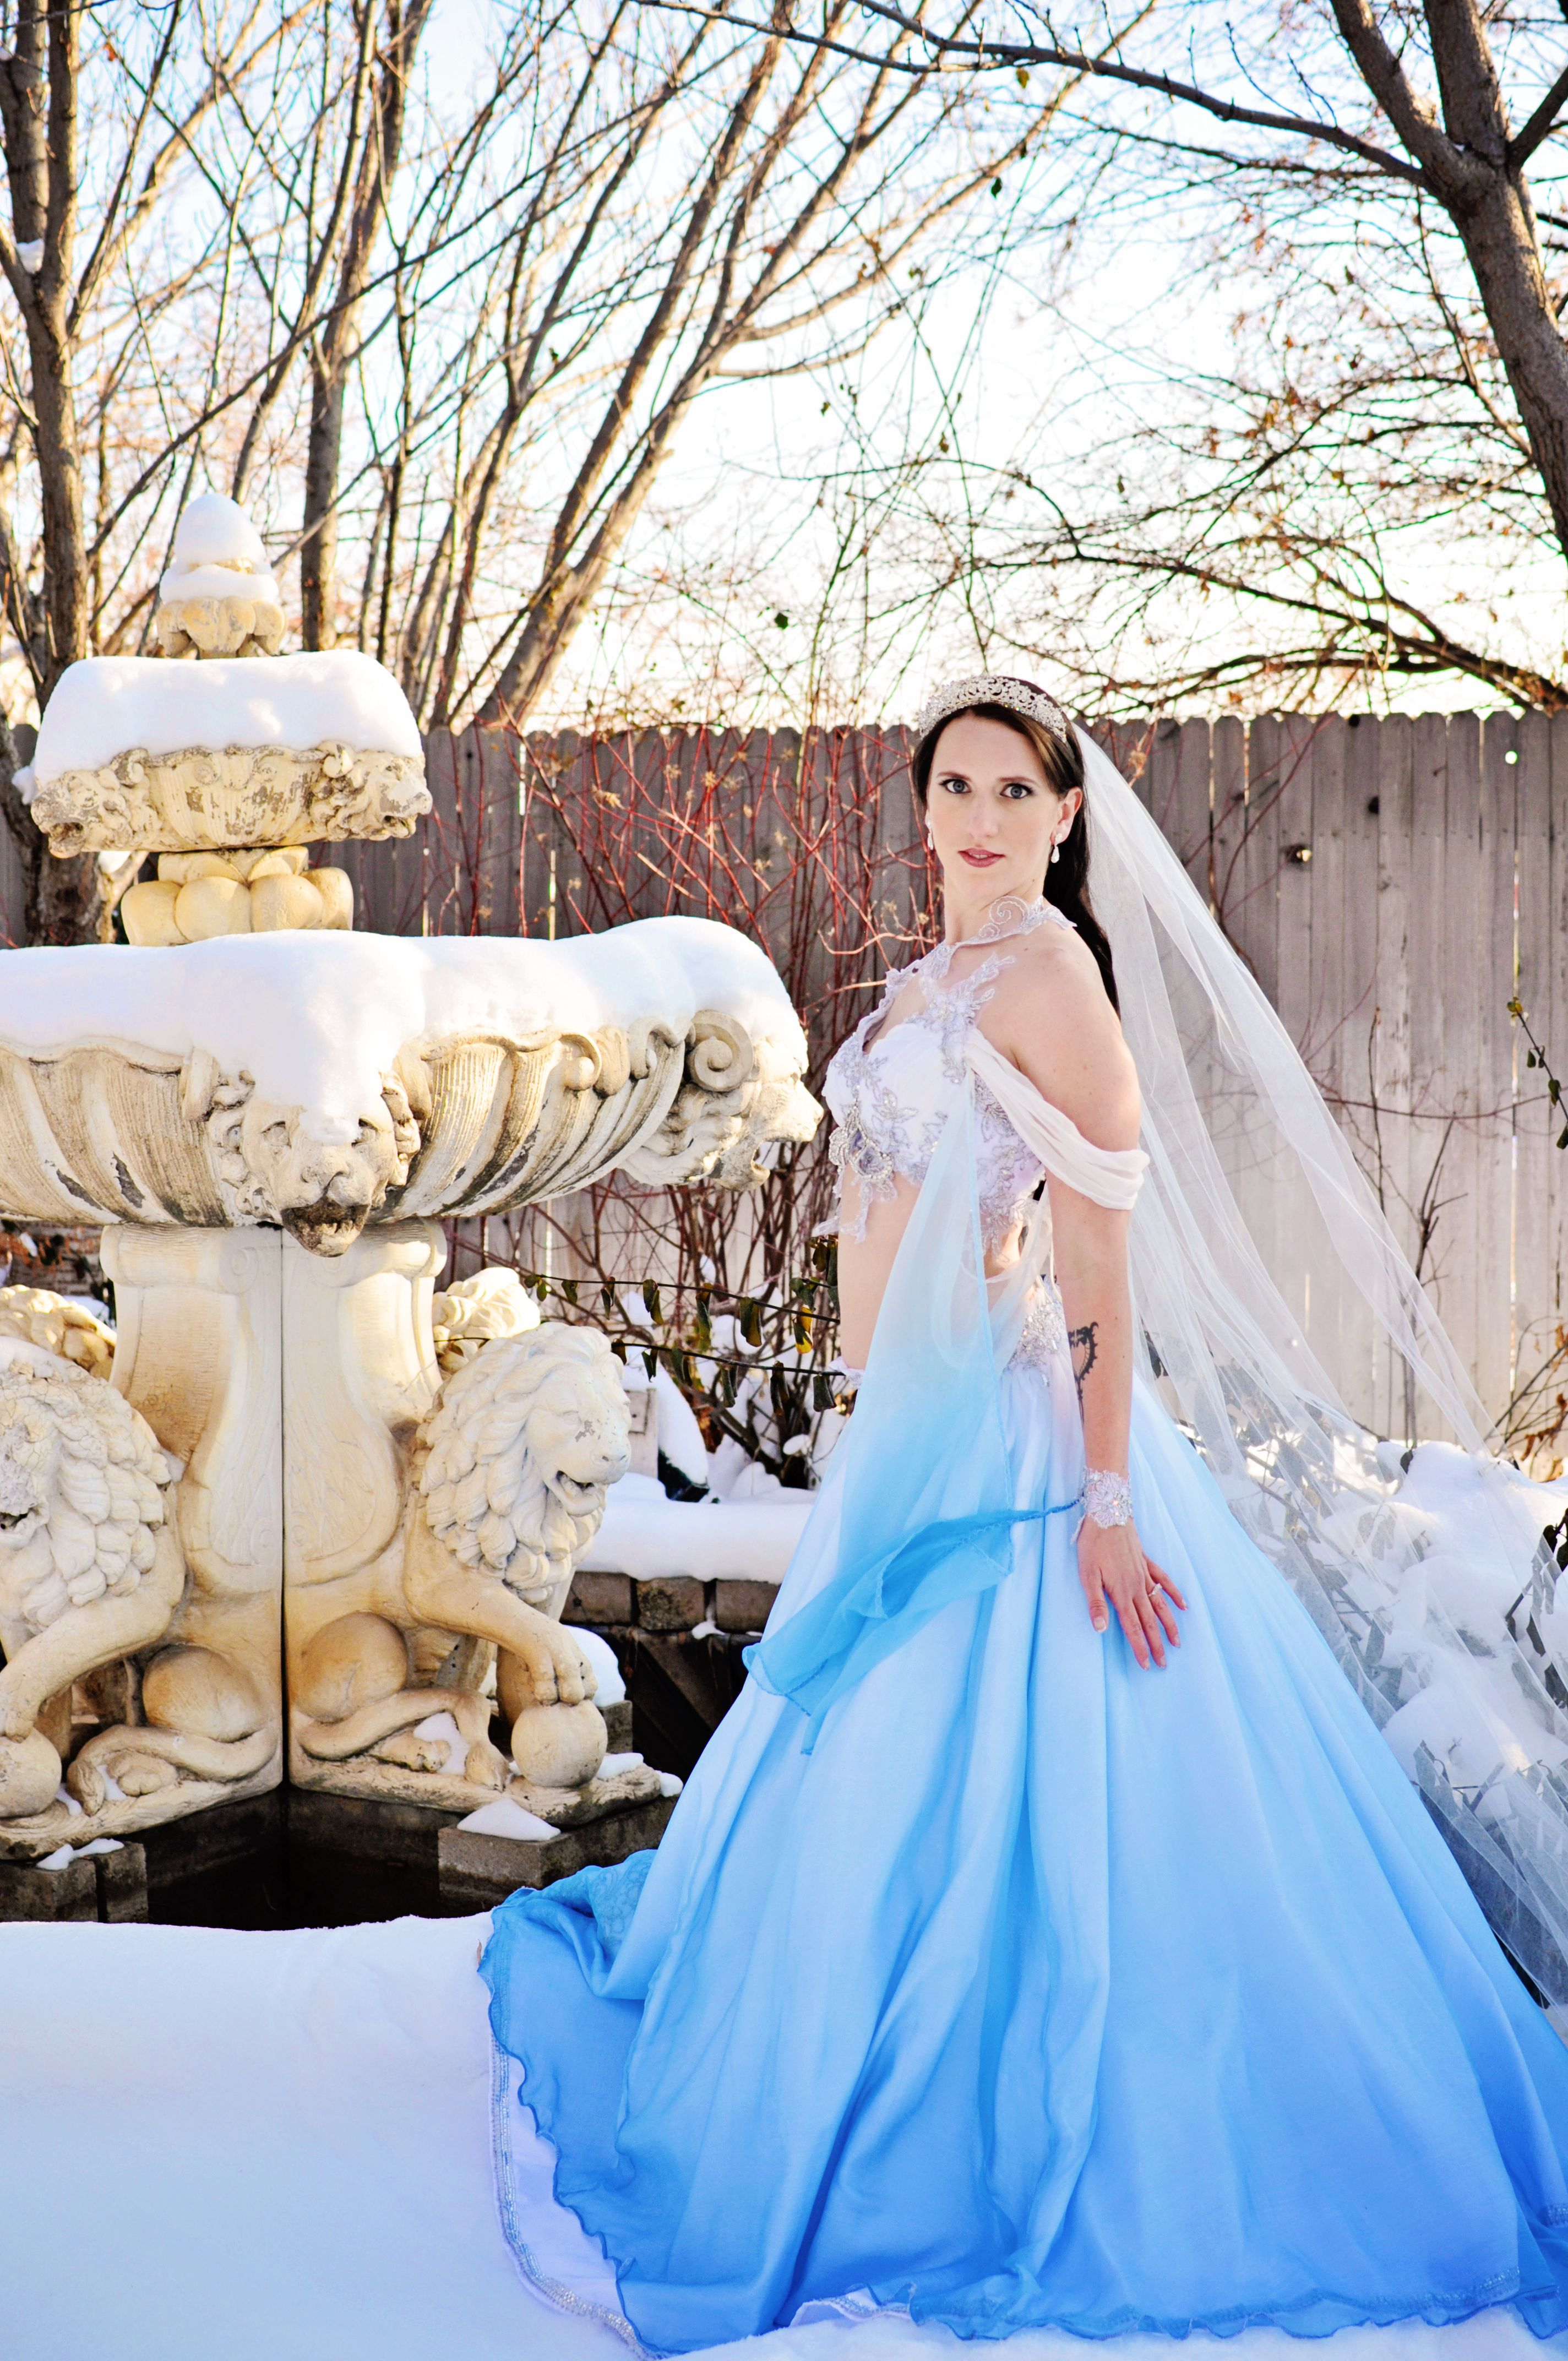 Winter Fantasy Blue Wedding Dress Belly Dance Wedding Blue Dress